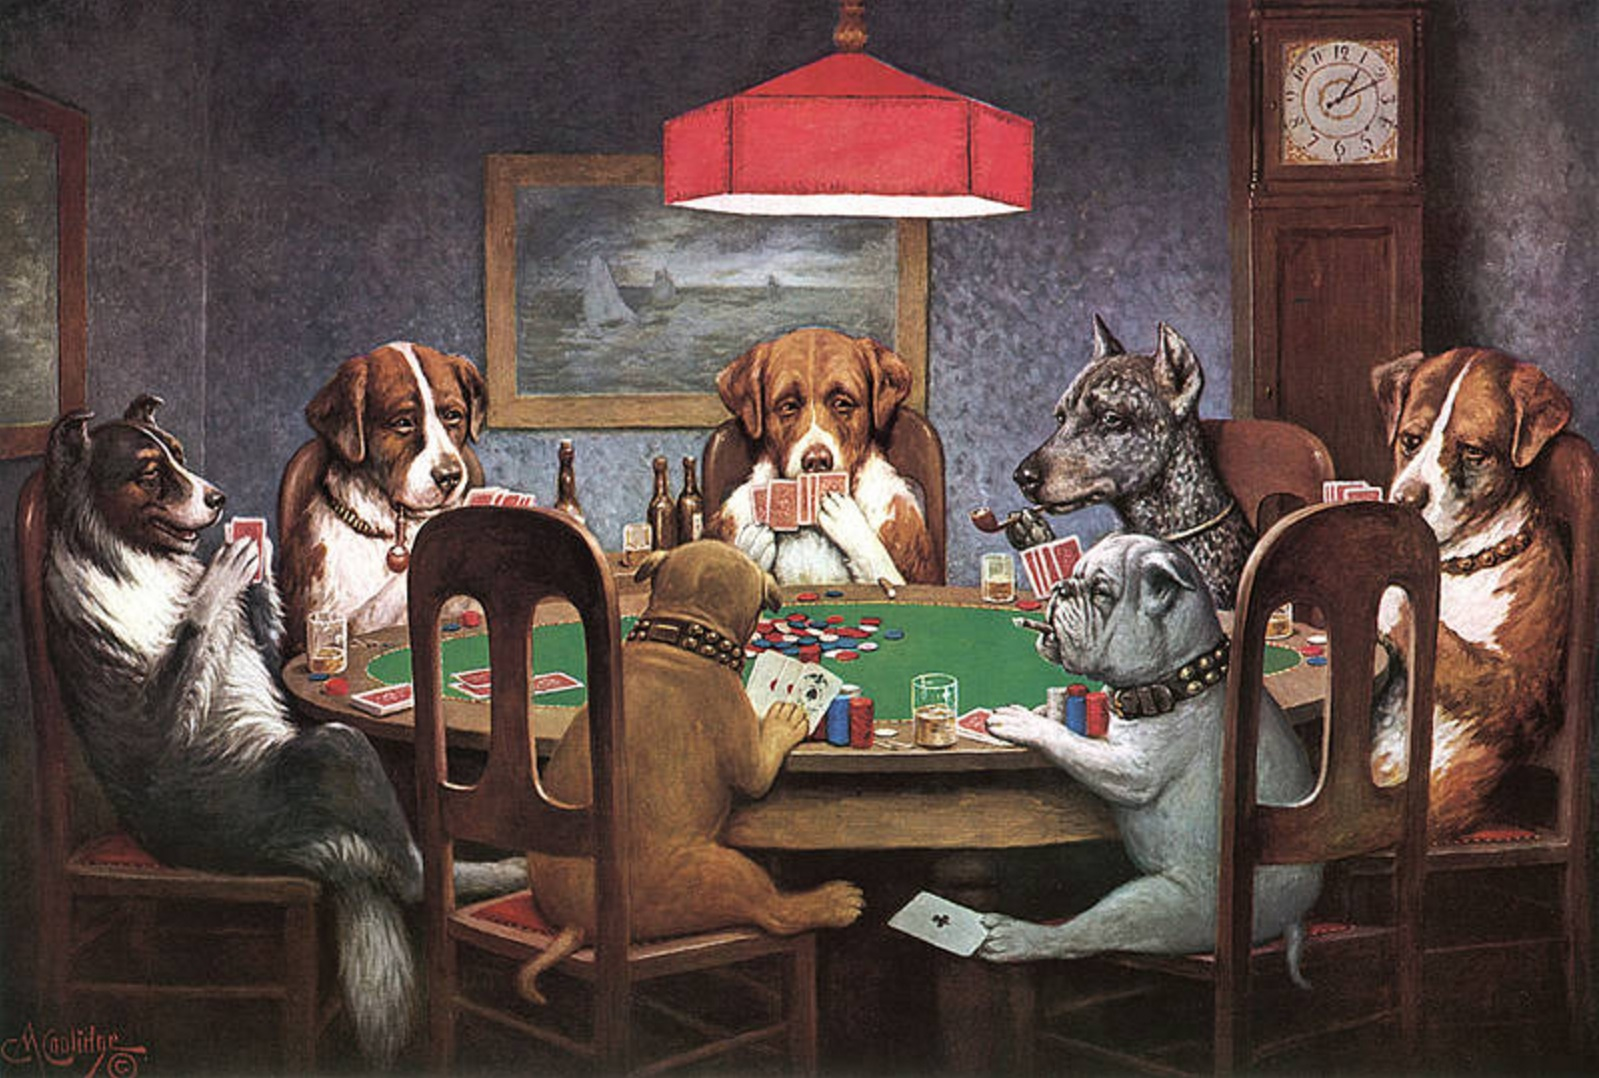 Poker & Pop Culture: Cassius M. Coolidge's Dogs Playing Poker 102